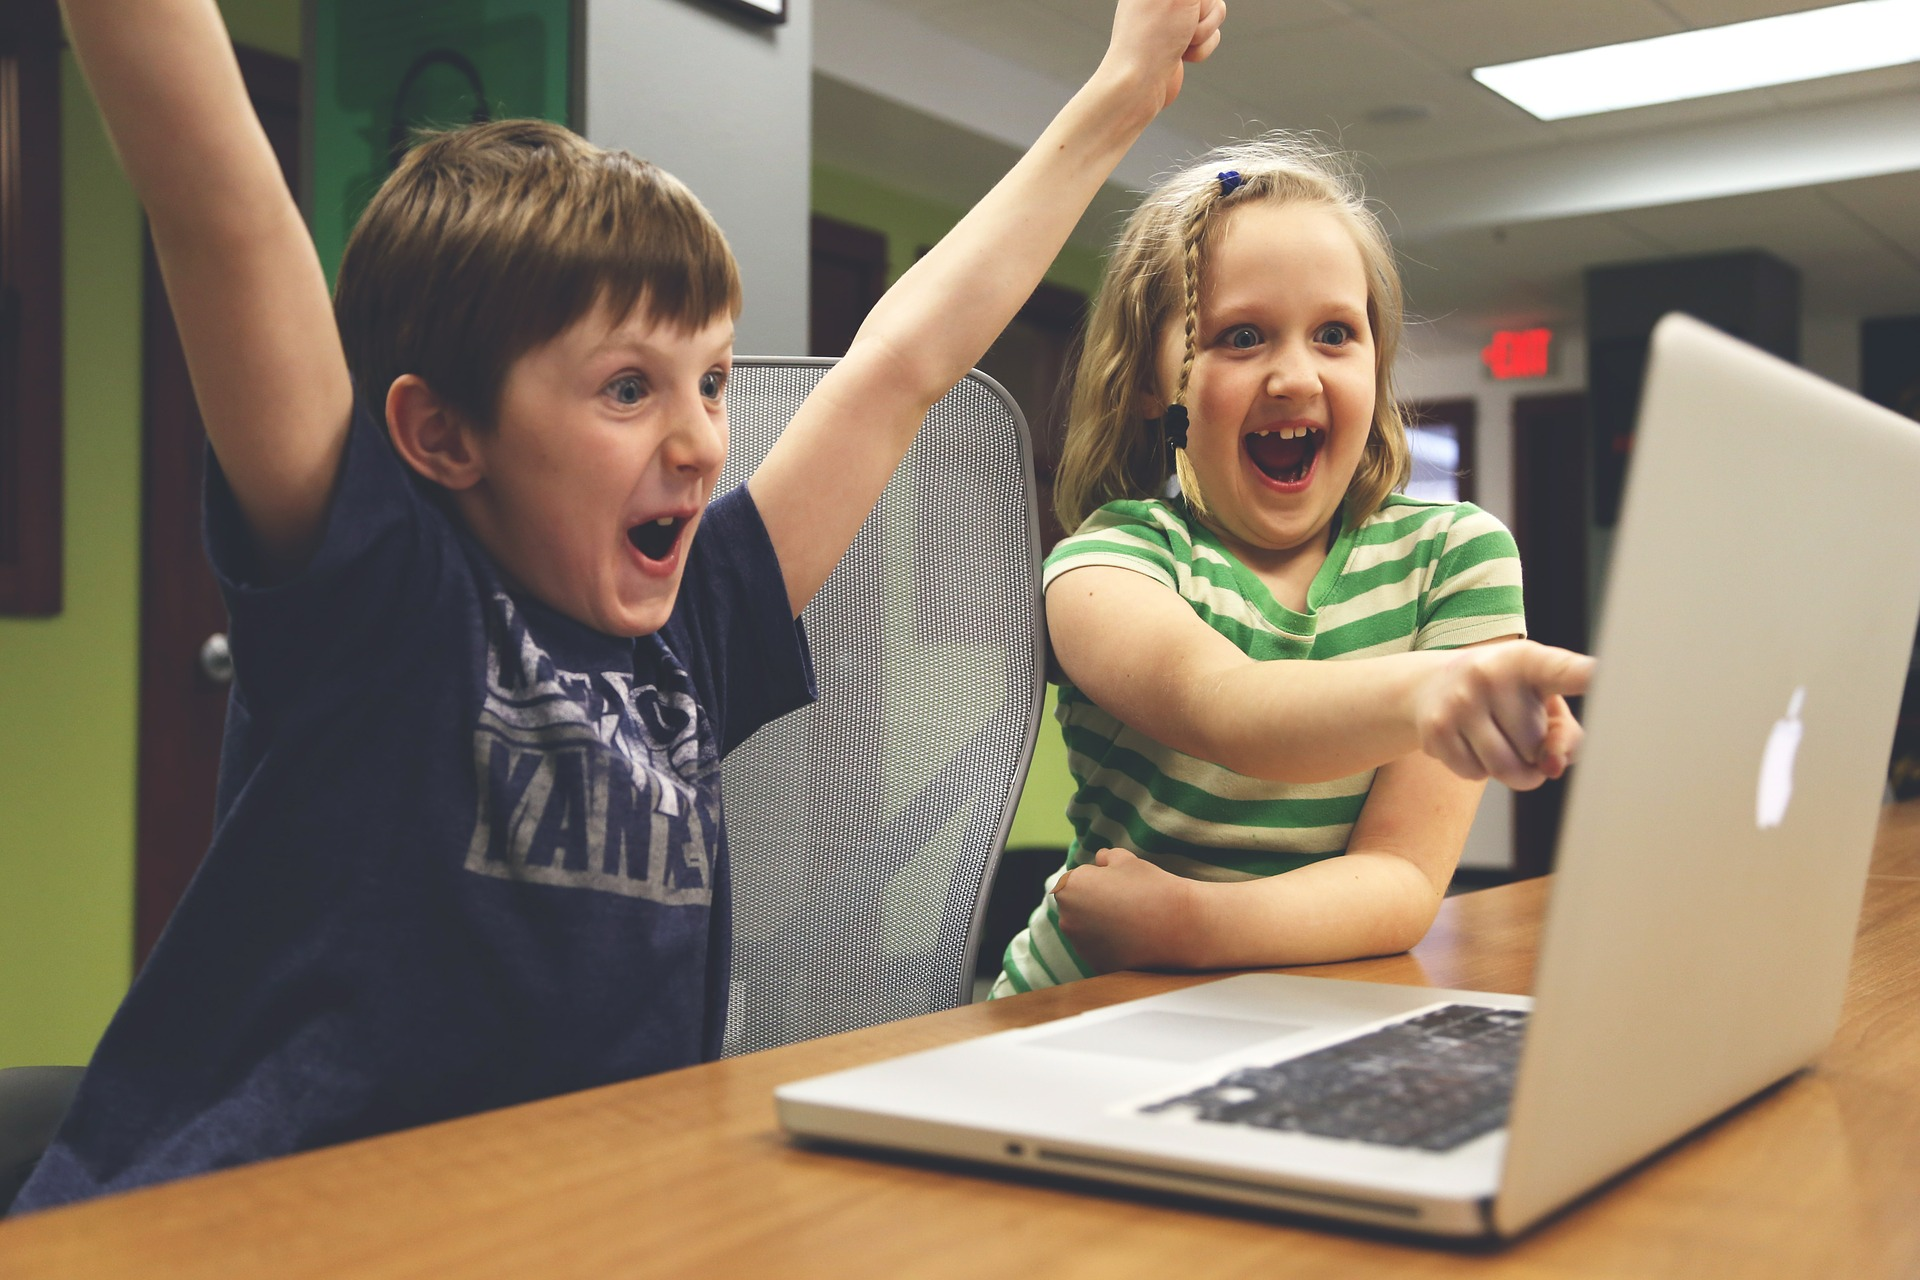 An international conference exploring children and the internet is to be held in Perth.